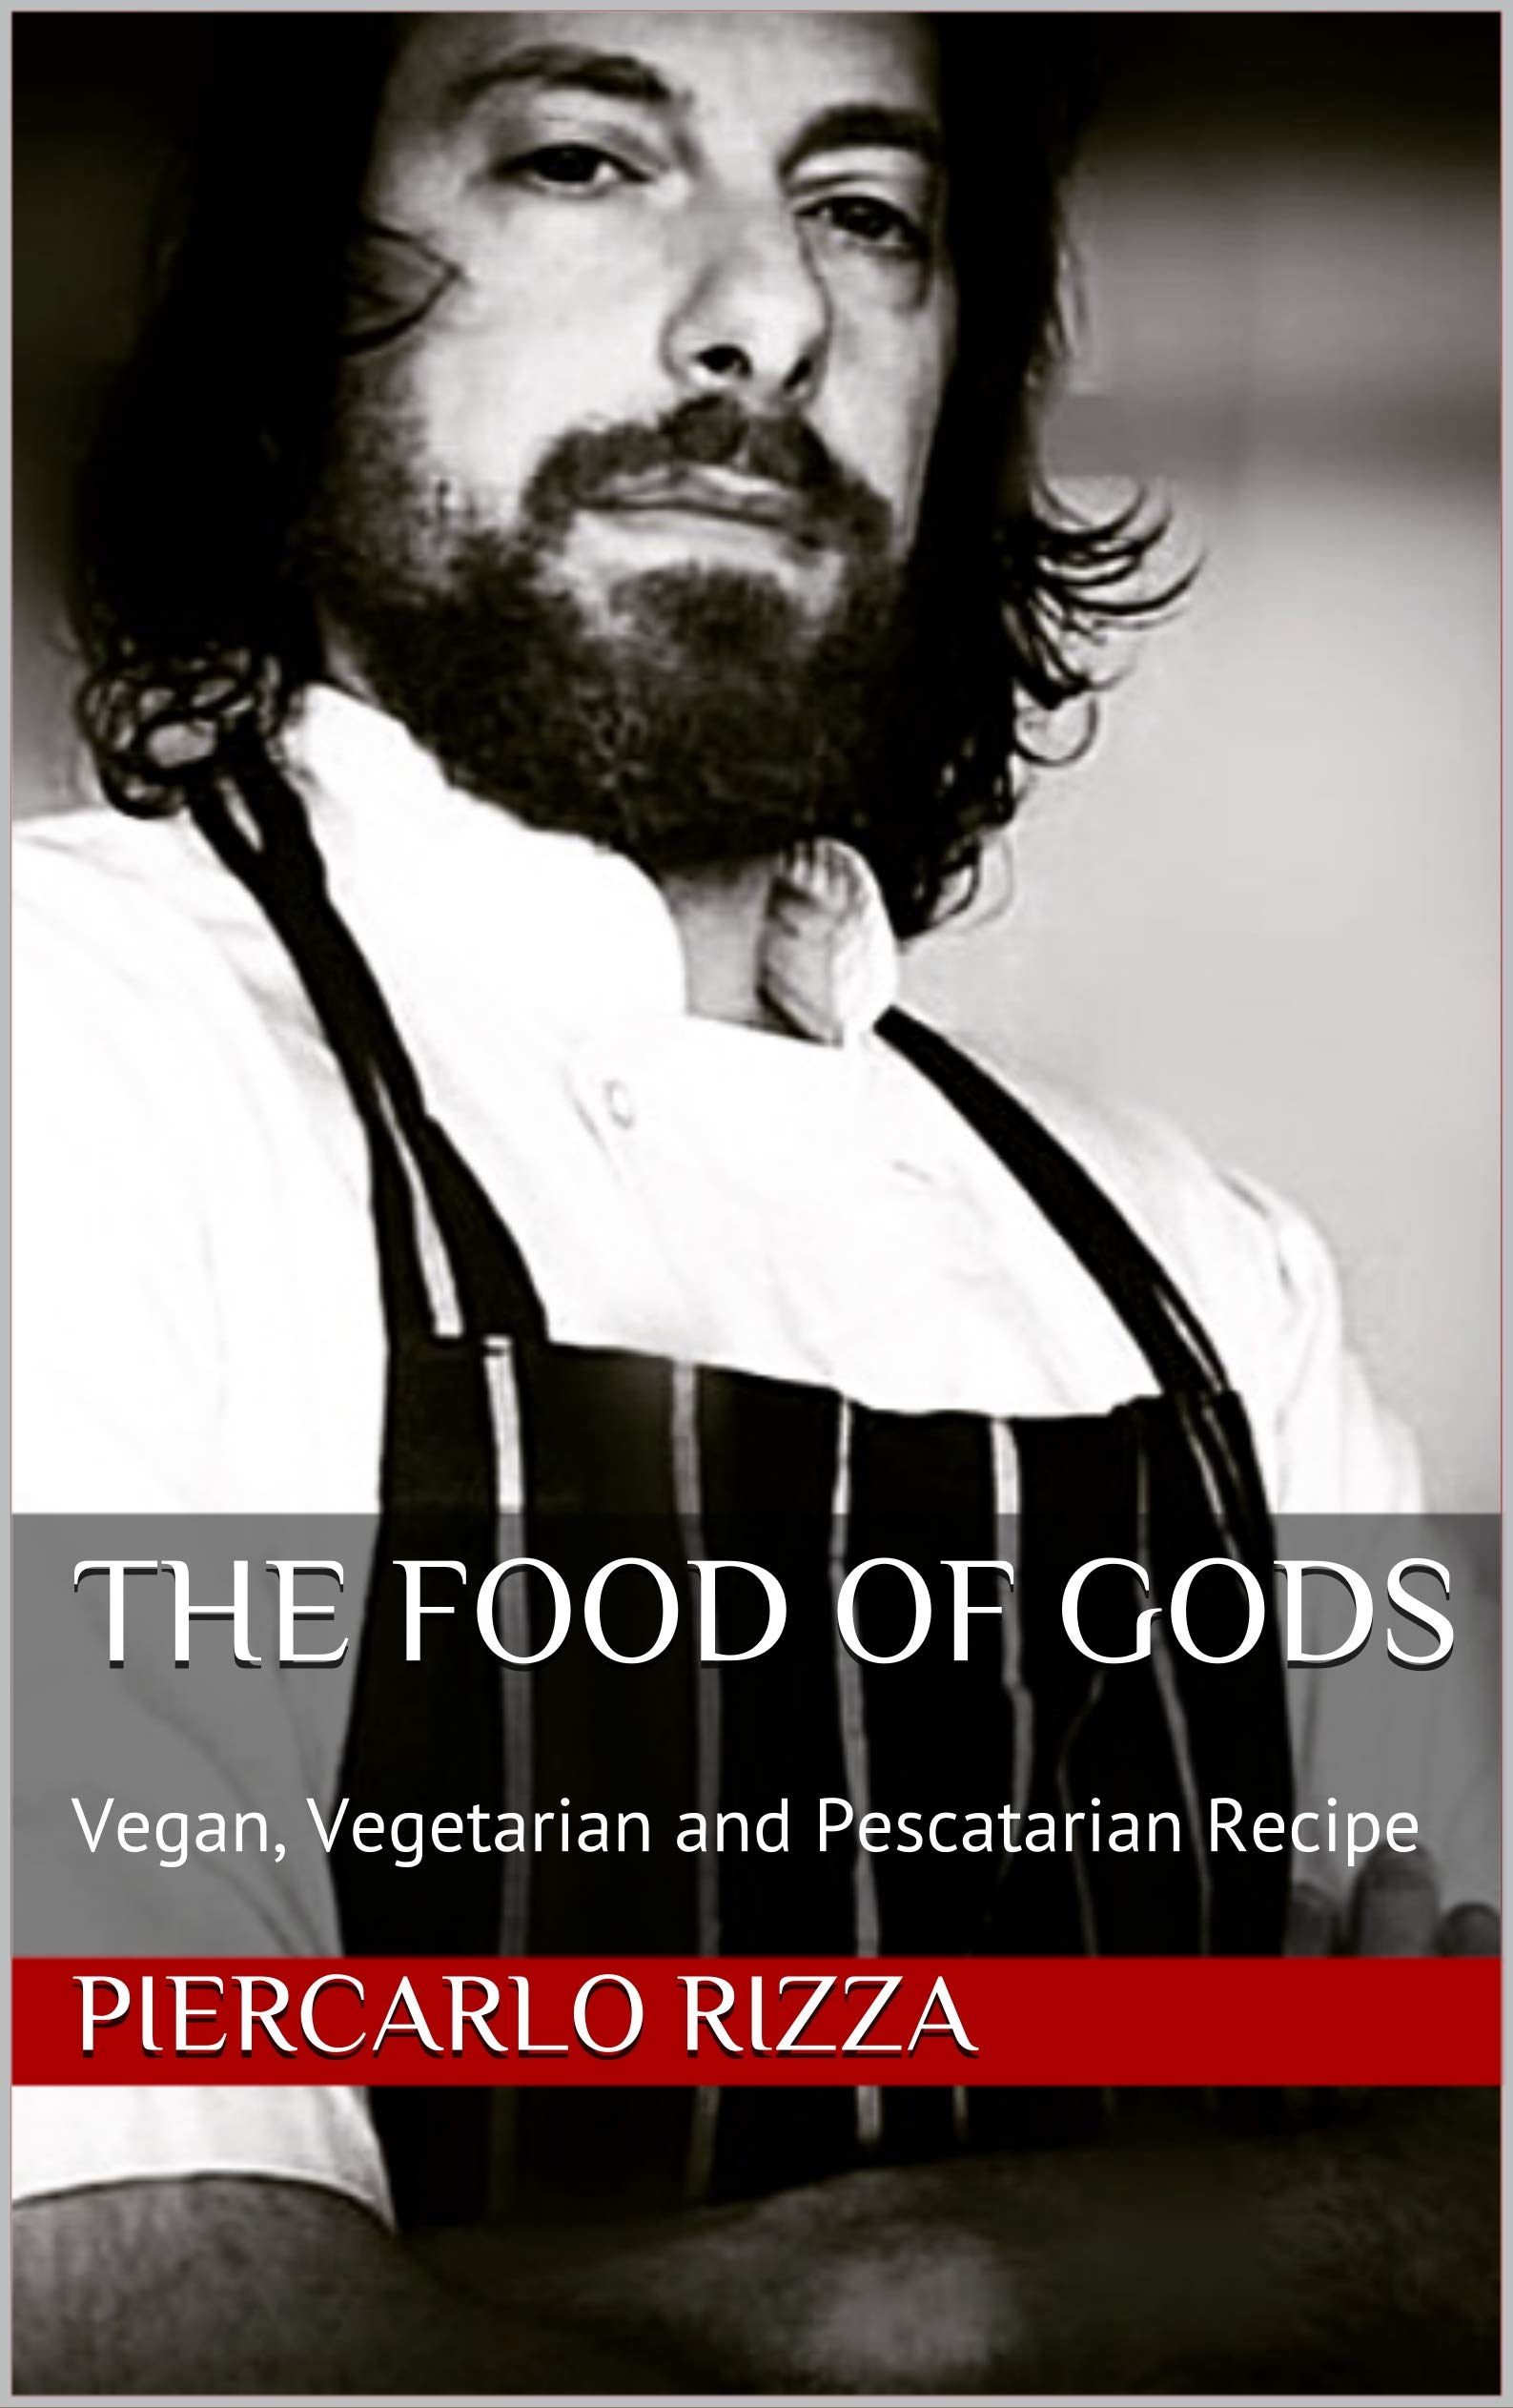 The Food of Gods: Vegan, Vegetarian and Pescatarian Recipes